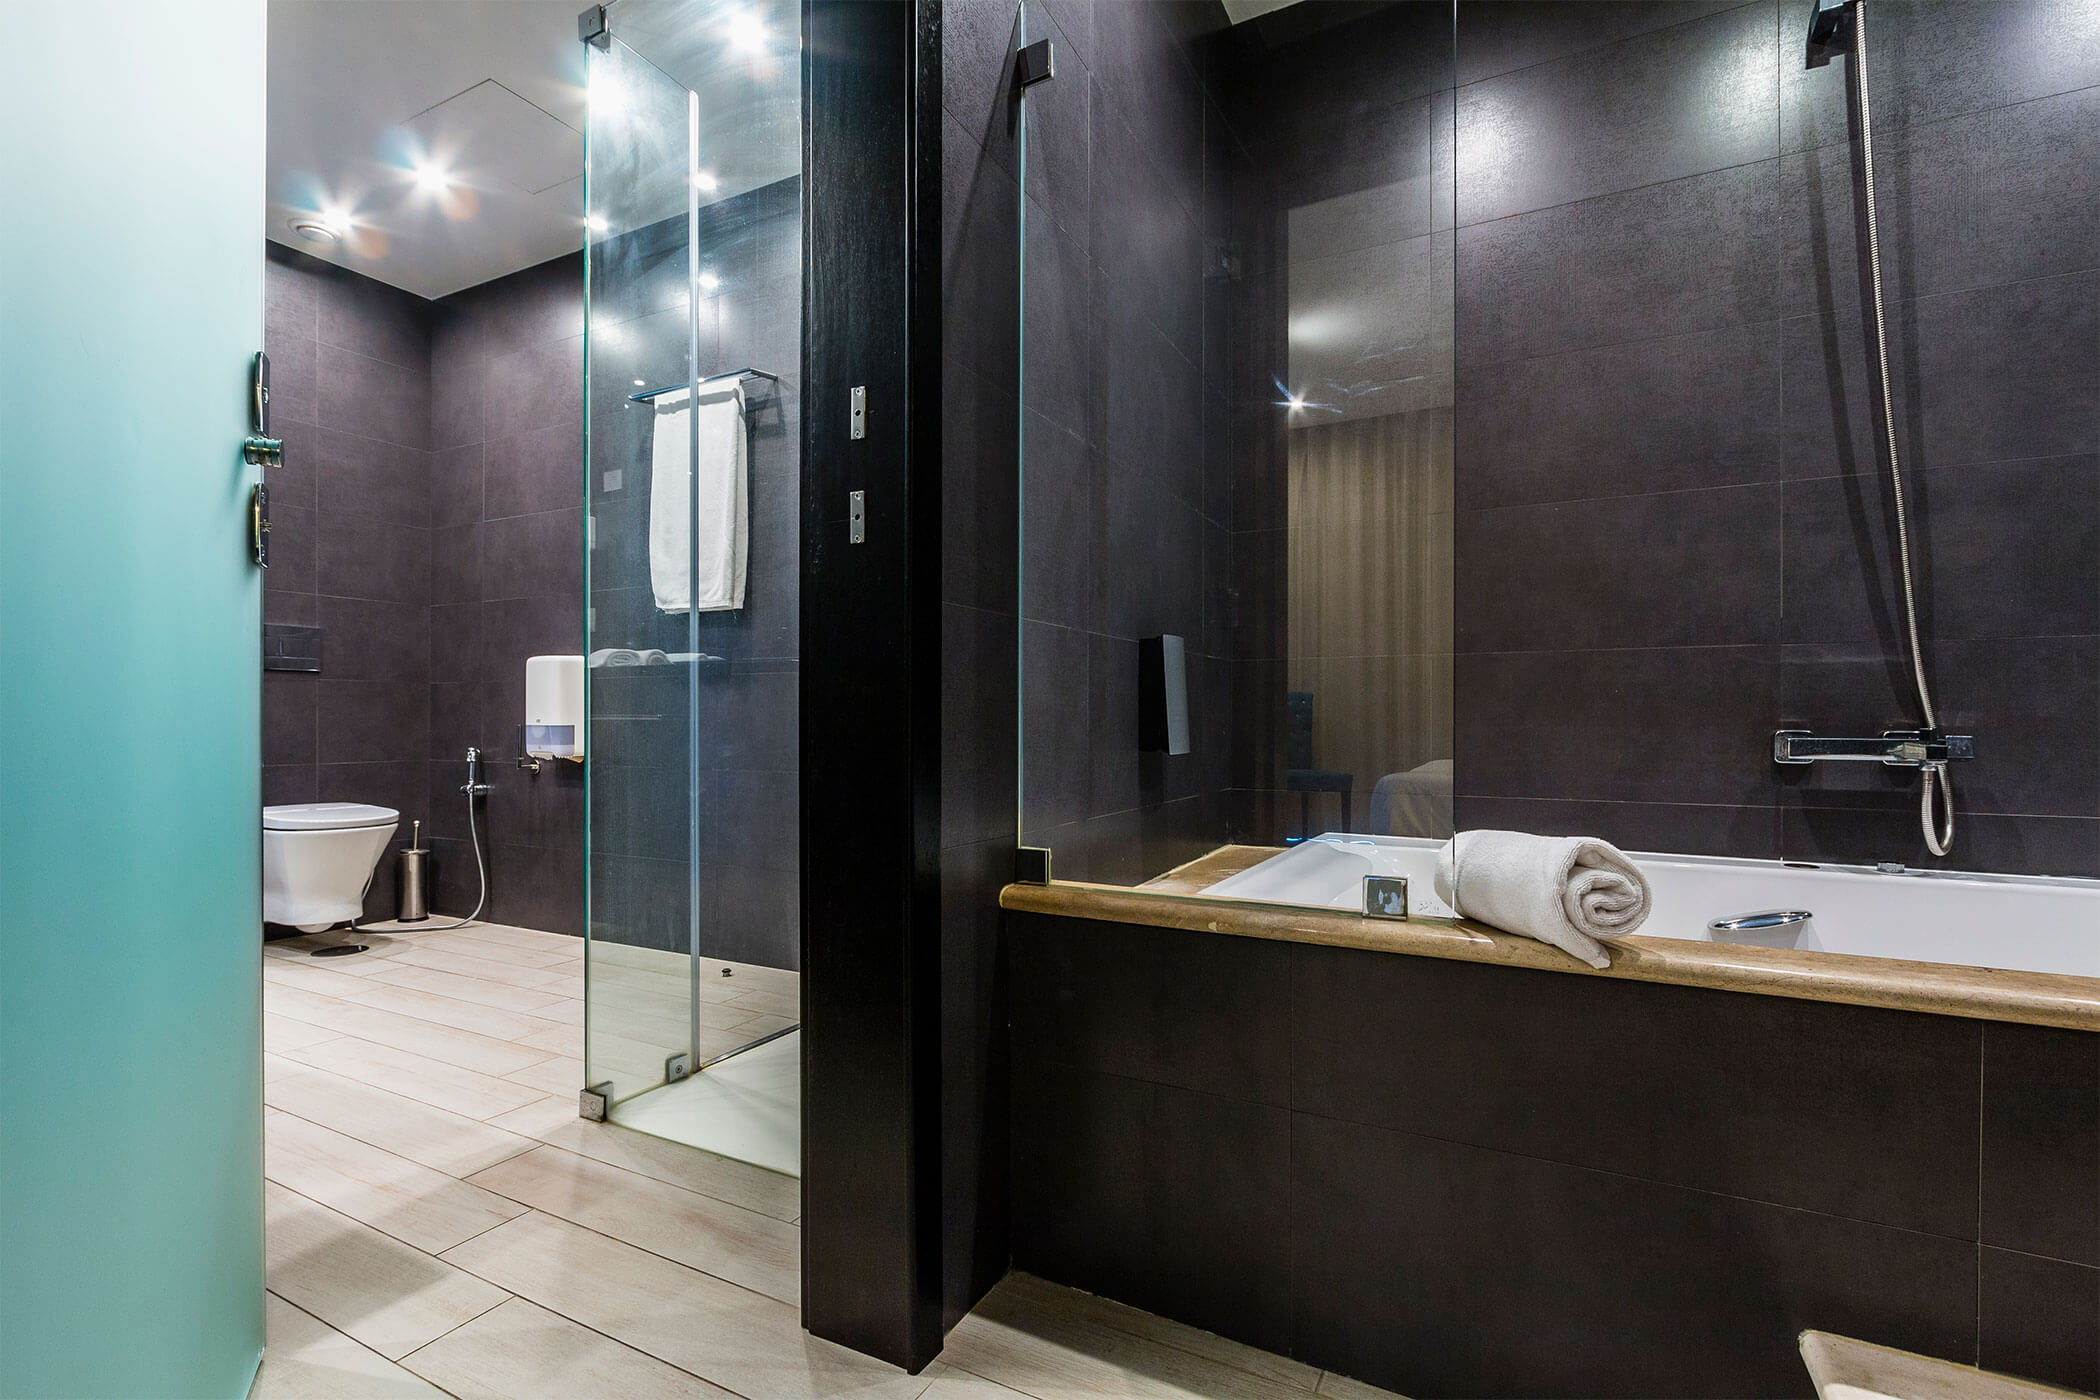 Rio Lis Suite, private bathroom with shower and hydromassage bathtub - Lisotel Hotel & Spa, Leiria